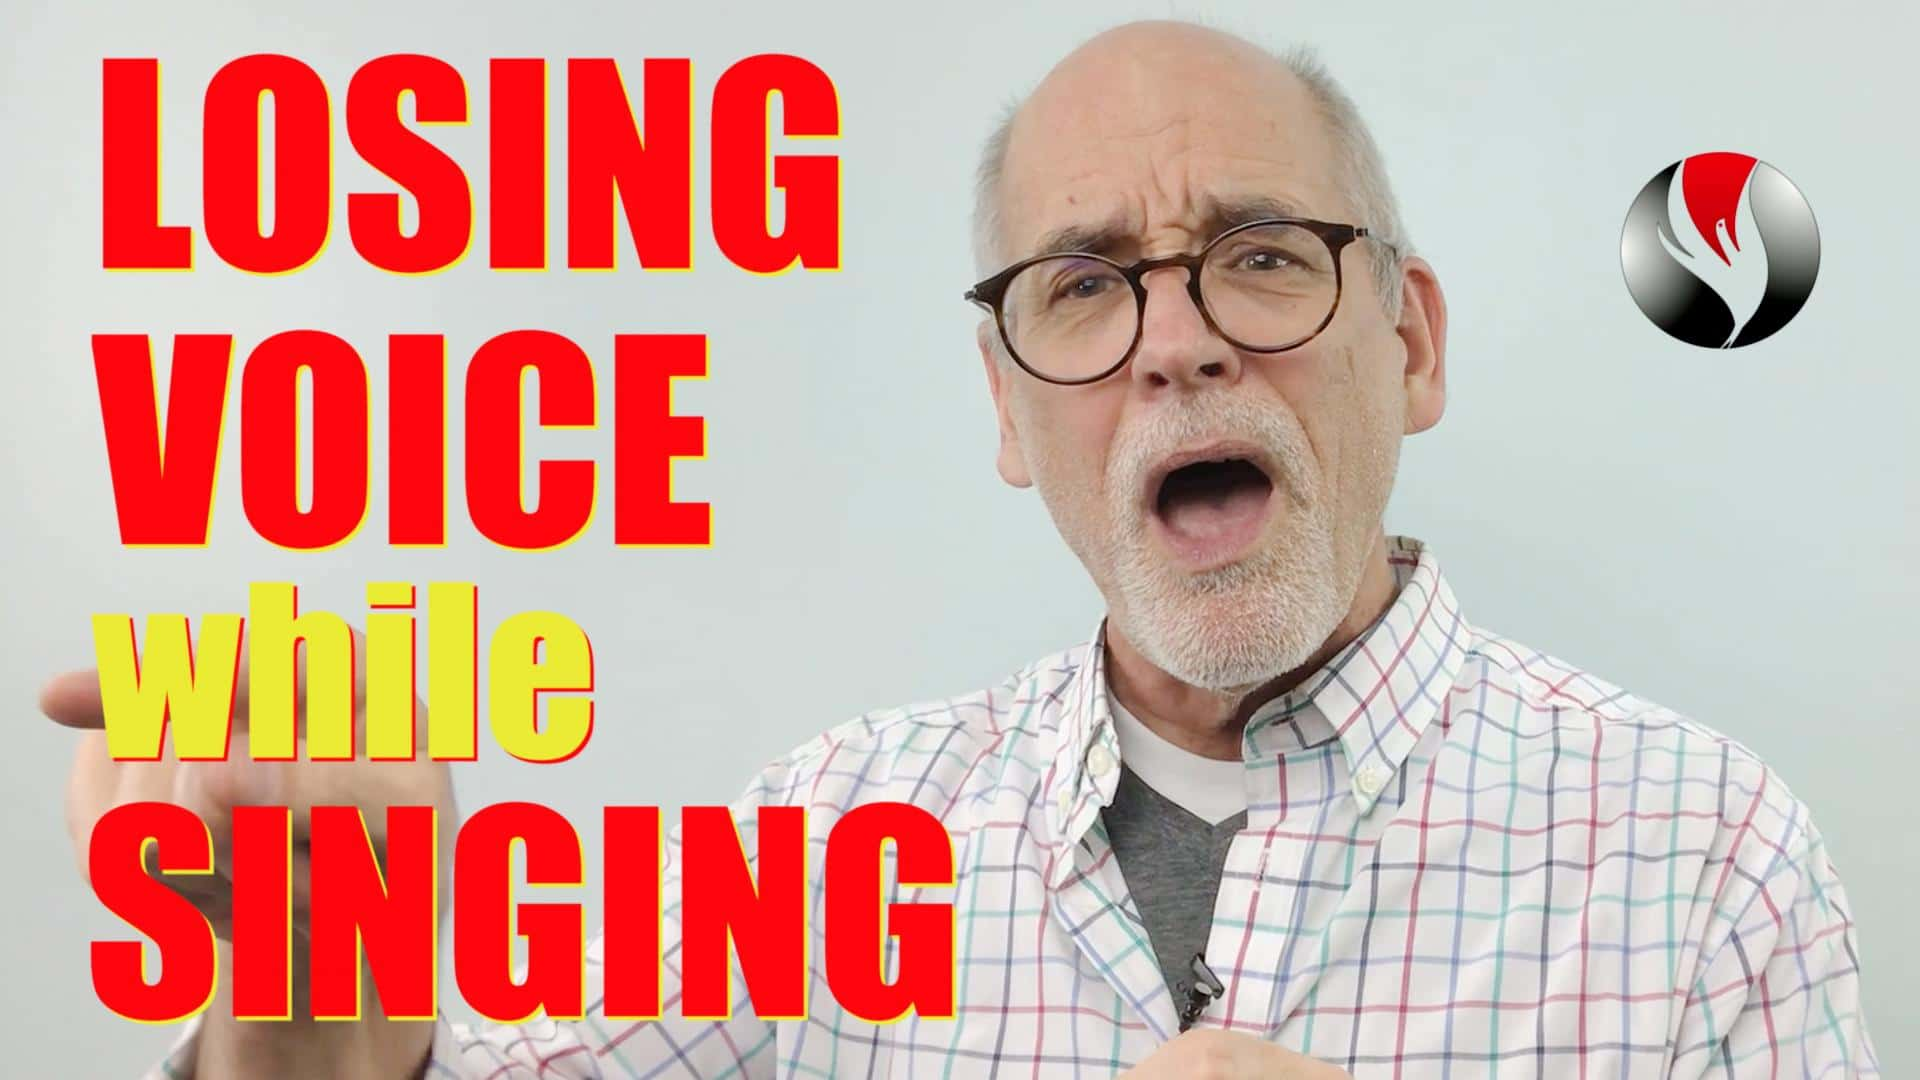 Losing Voice While Singing – 3 Steps to Prevent Vocal Damage